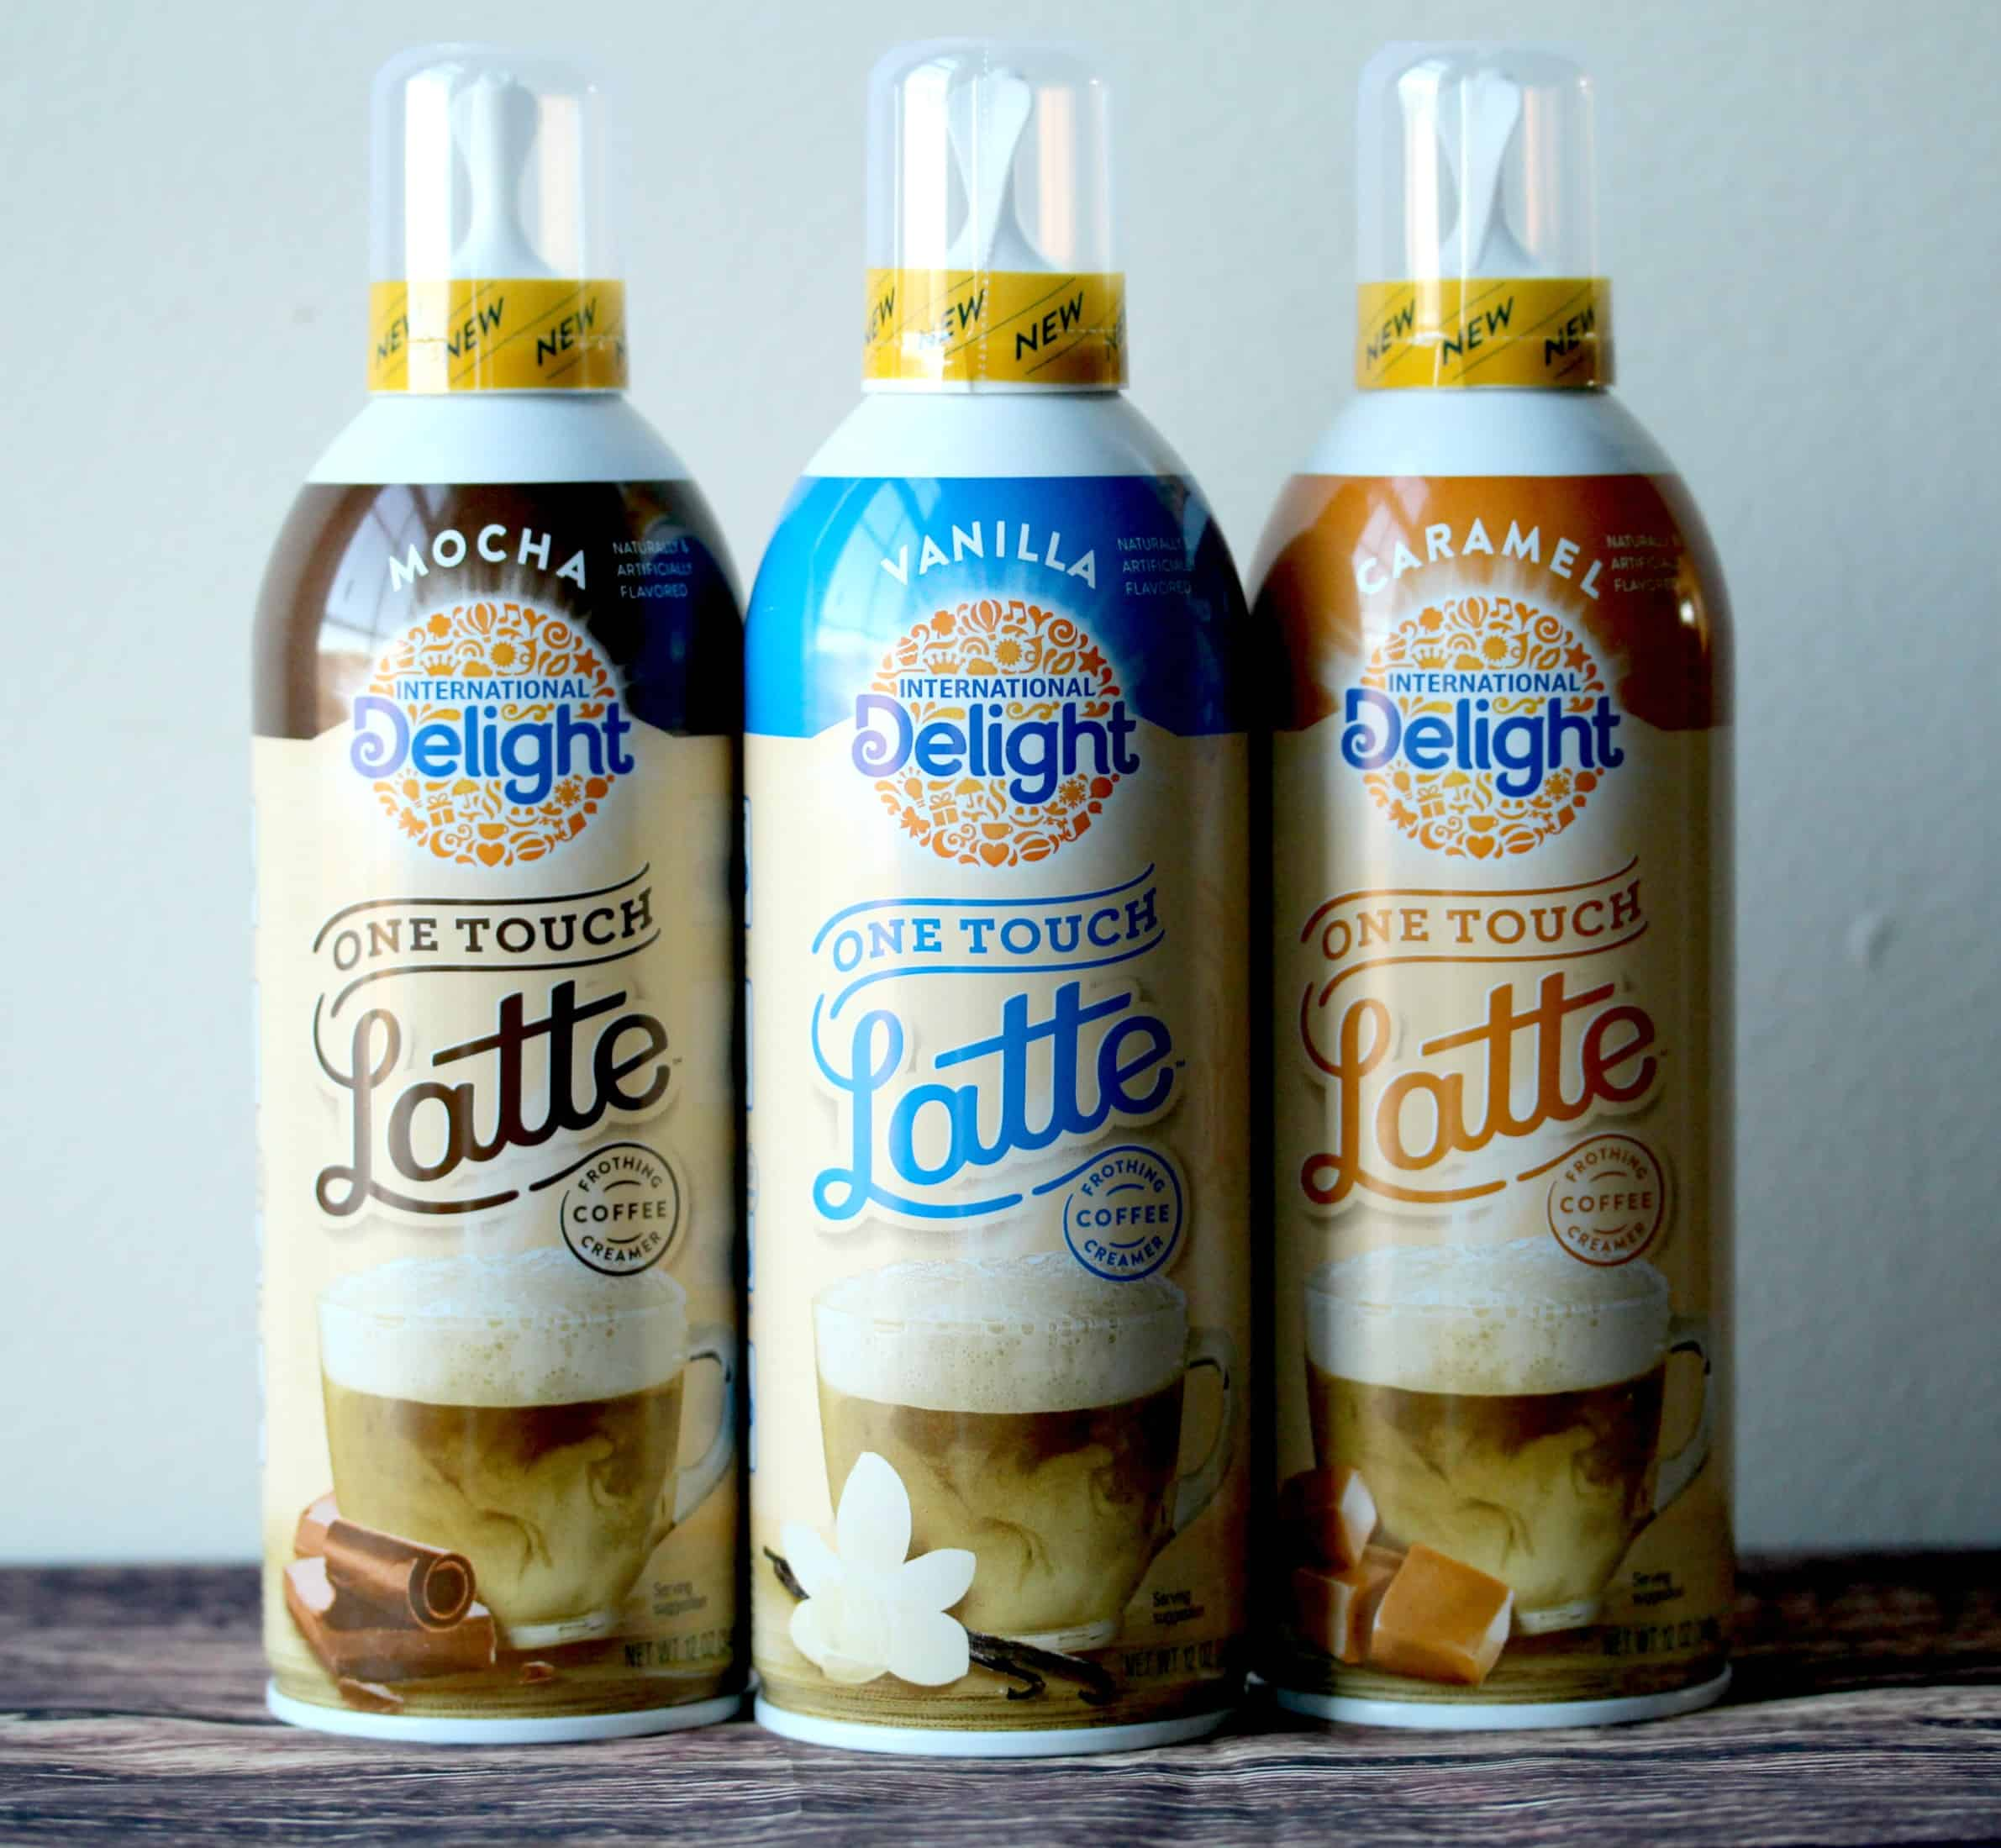 International Delight - One Touch Latte